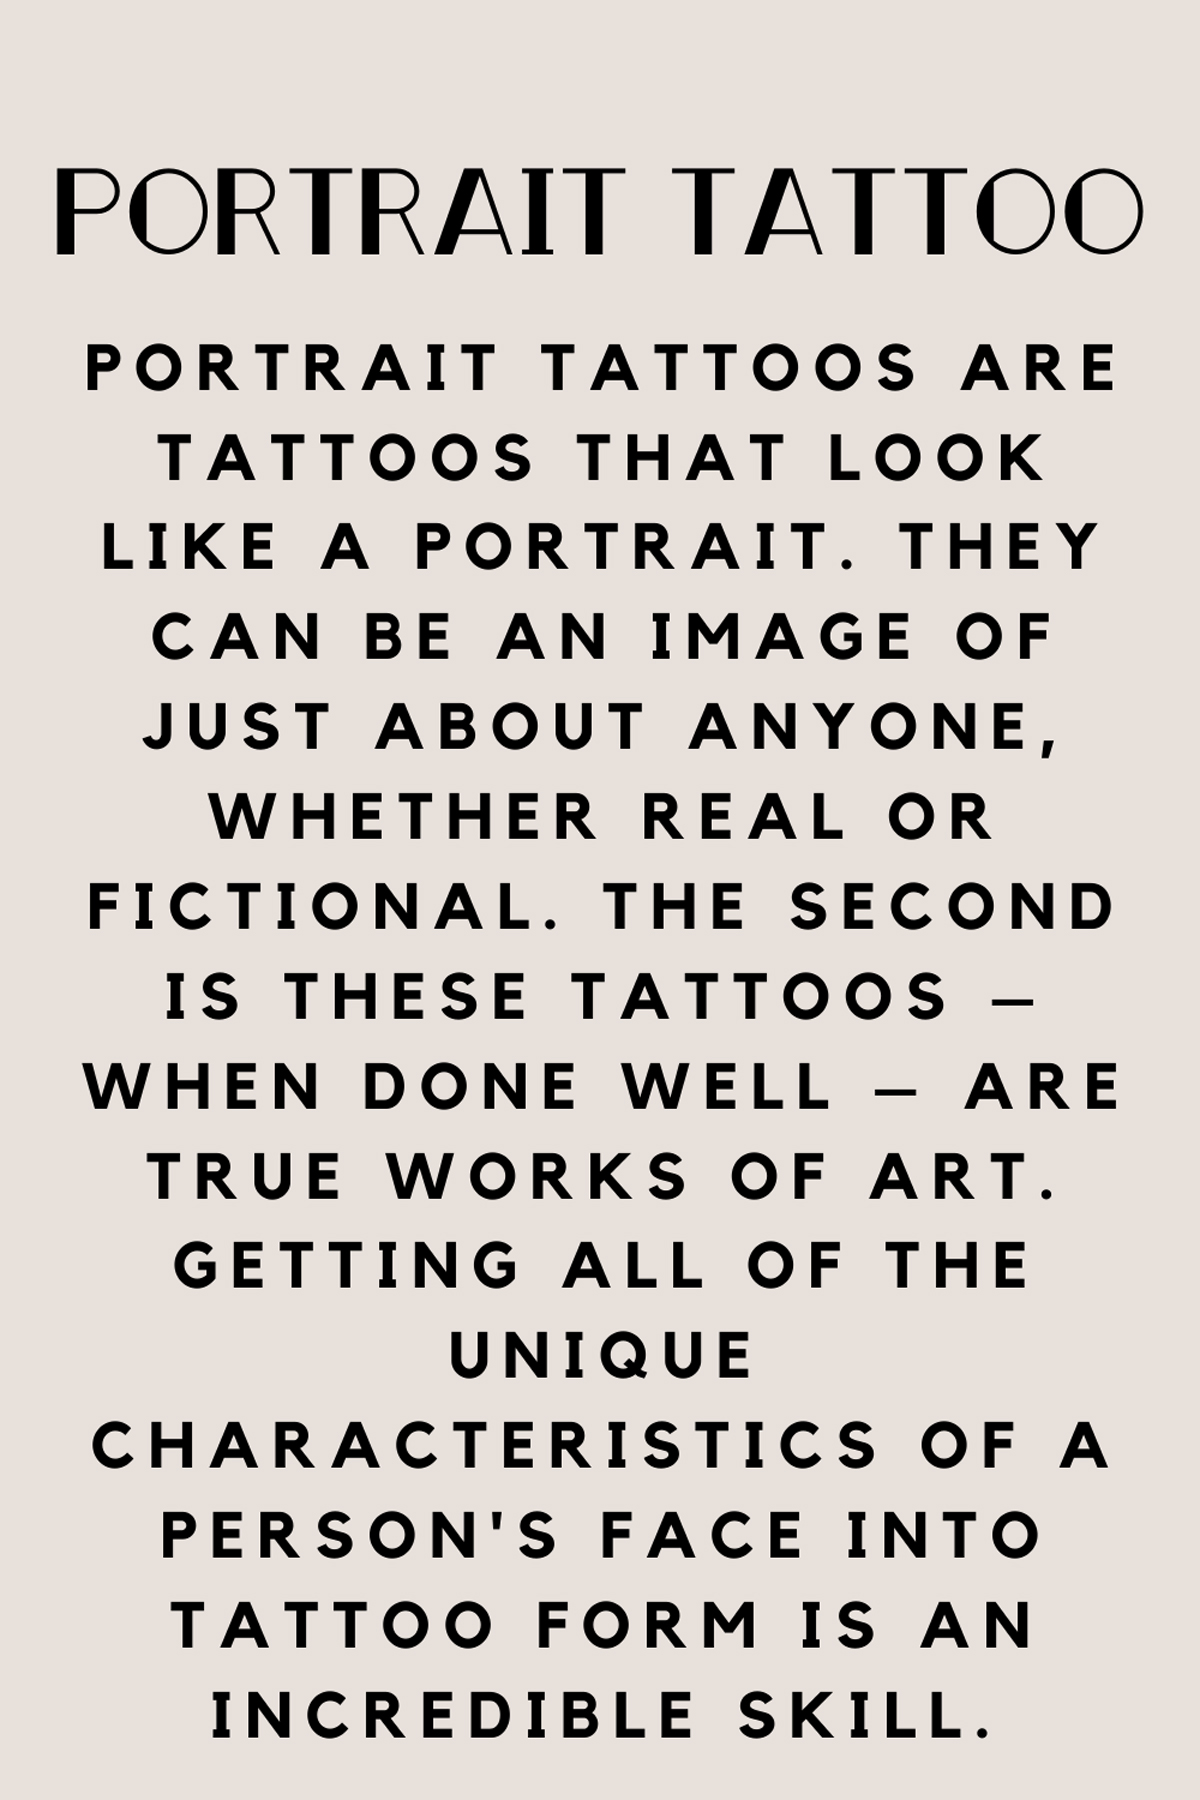 What is a Portrait Tattoo